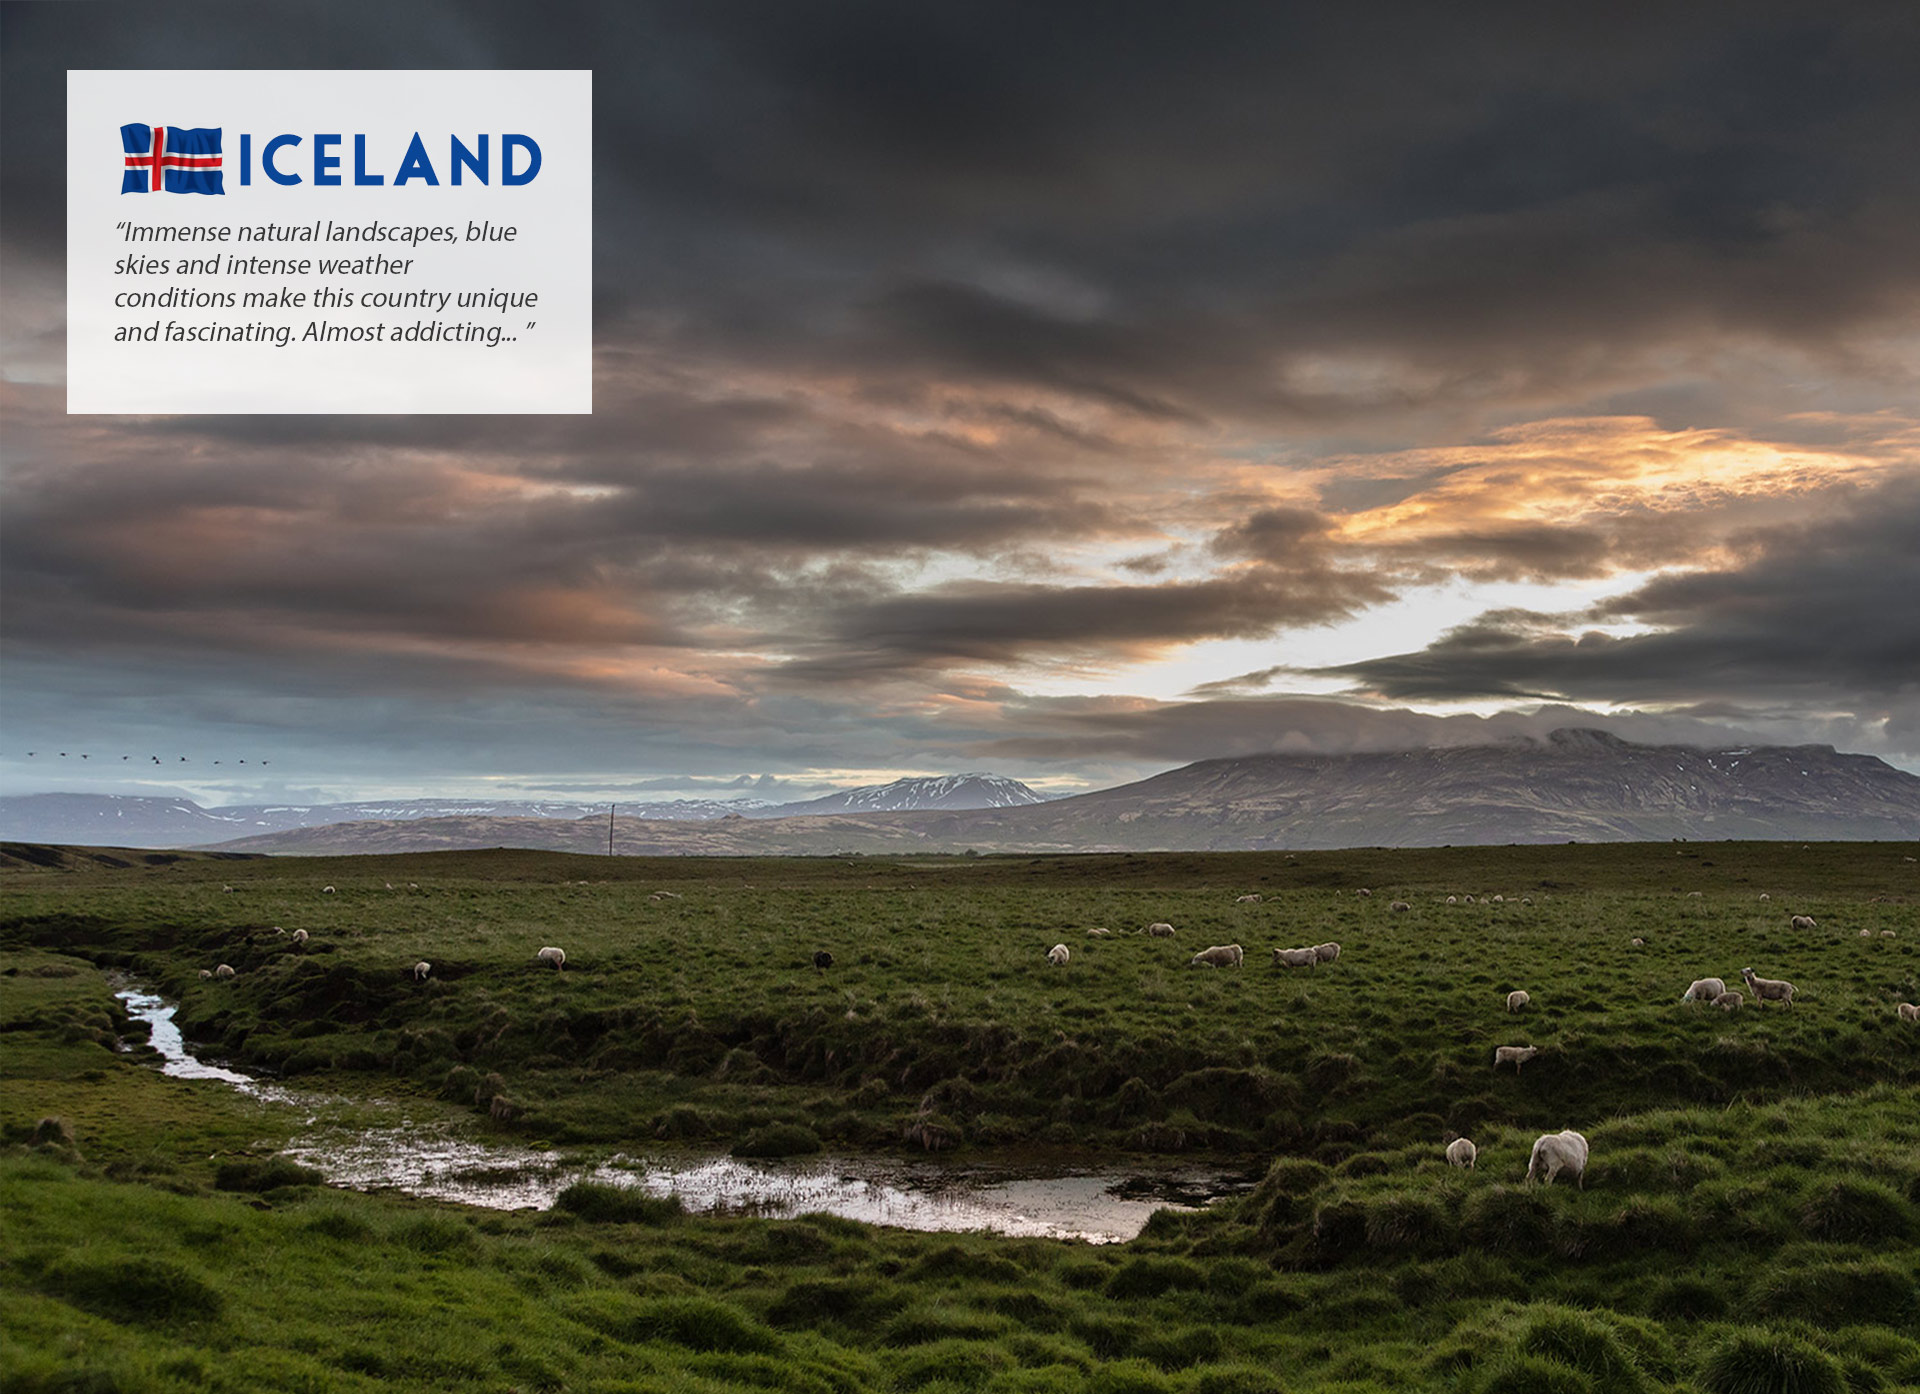 Iceland Intro Landscape | Travel Photographer Los Angeles